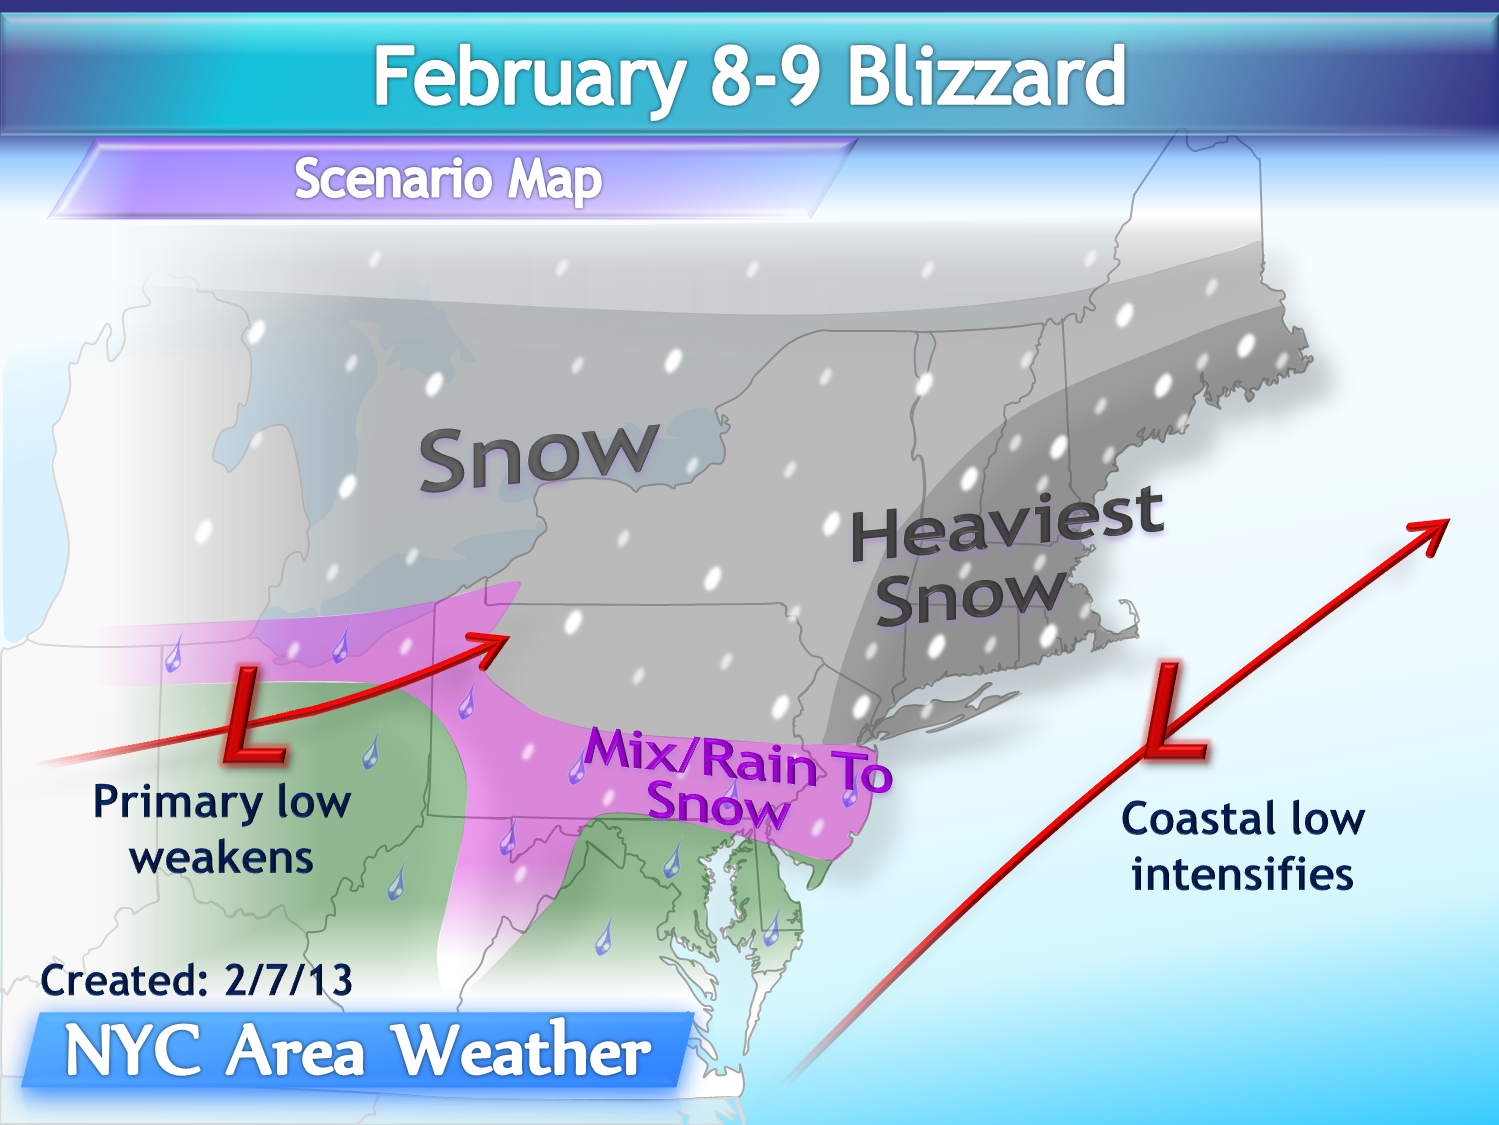 after a relatively inactive winter so far the first blizzard in over 2 years since january 2011 will affect the area on friday night with heavy snowfall